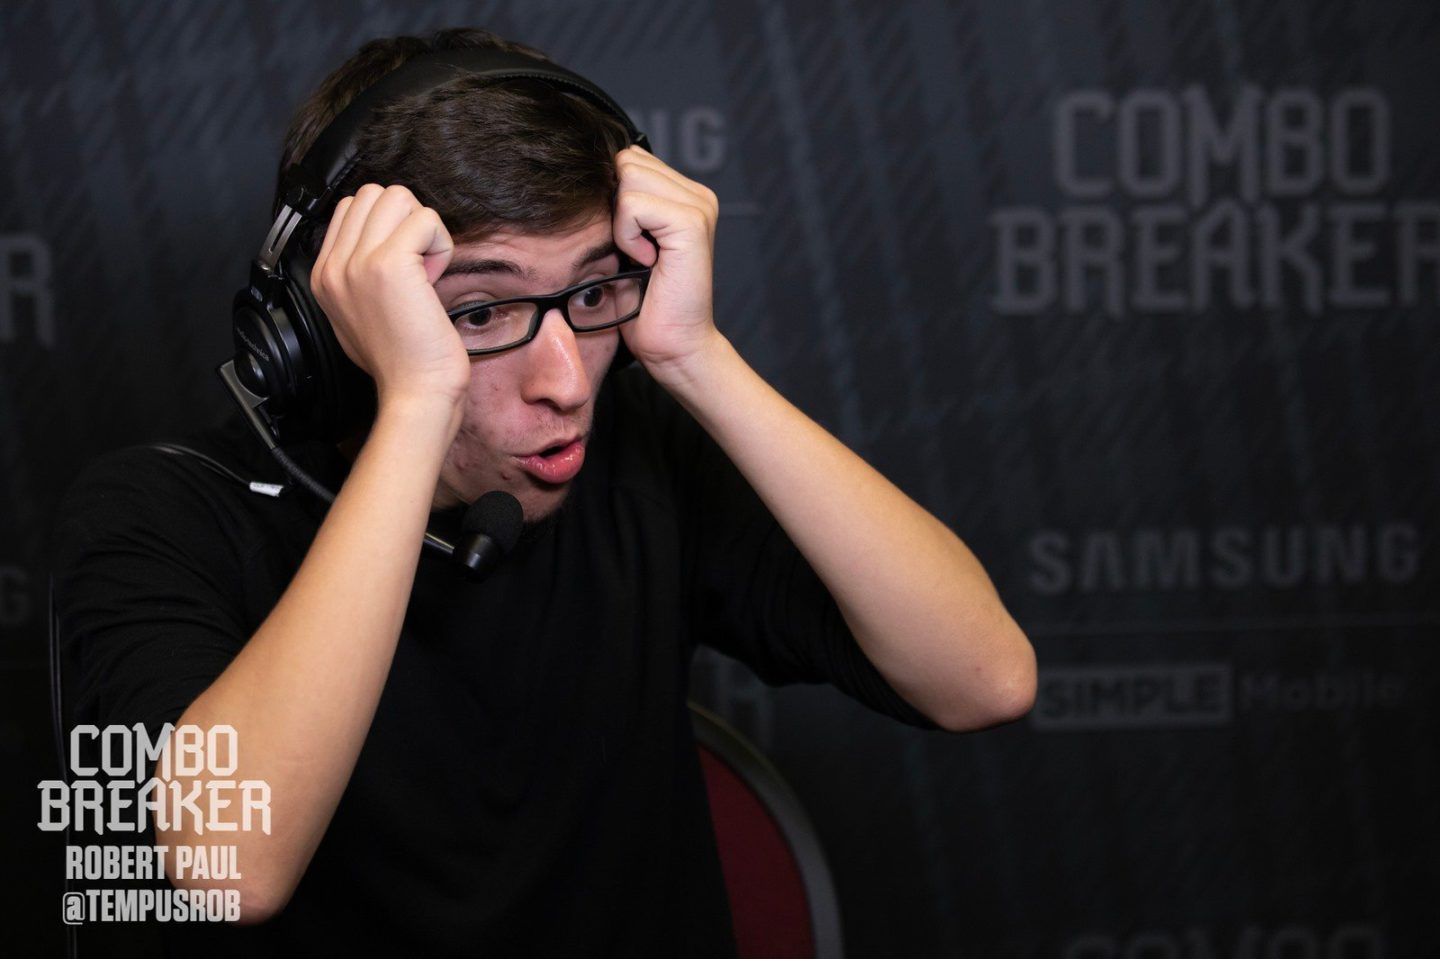 """alex """"cookie"""" shaw, apparently in the middle of having his mind blown at combo breaker"""